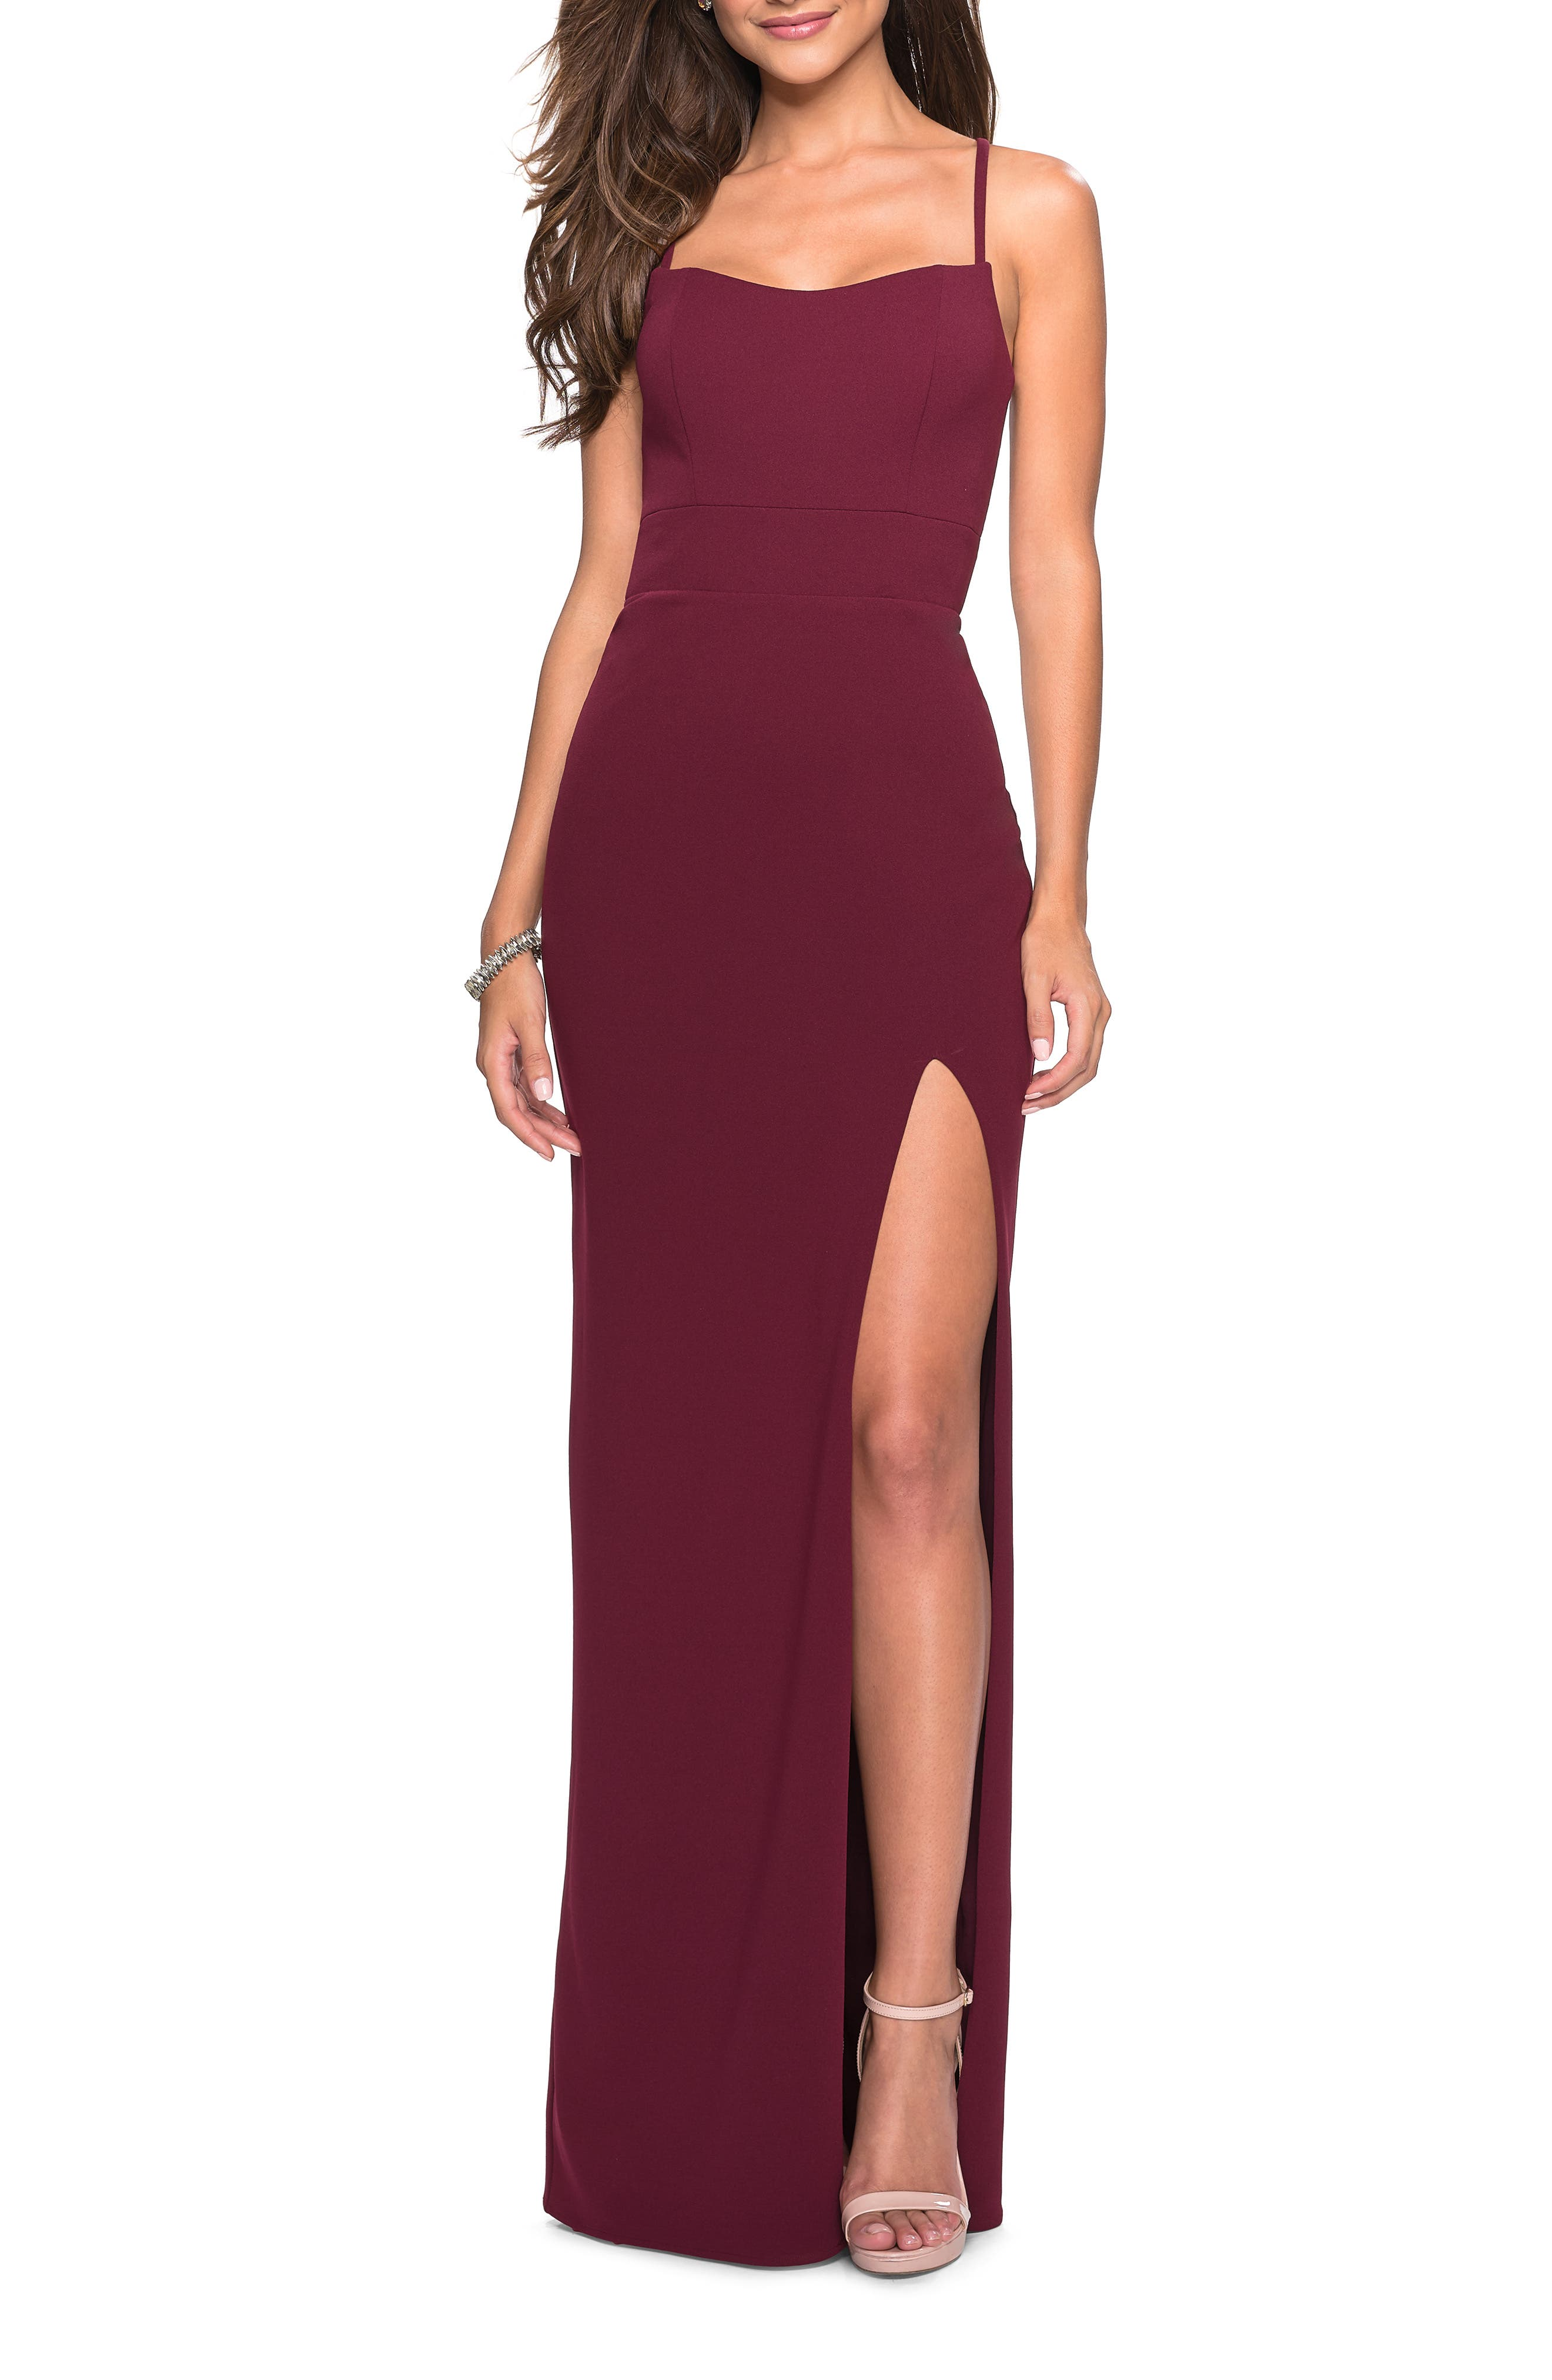 La Femme Sweetheart Neck Jersey Evening Dress, Burgundy